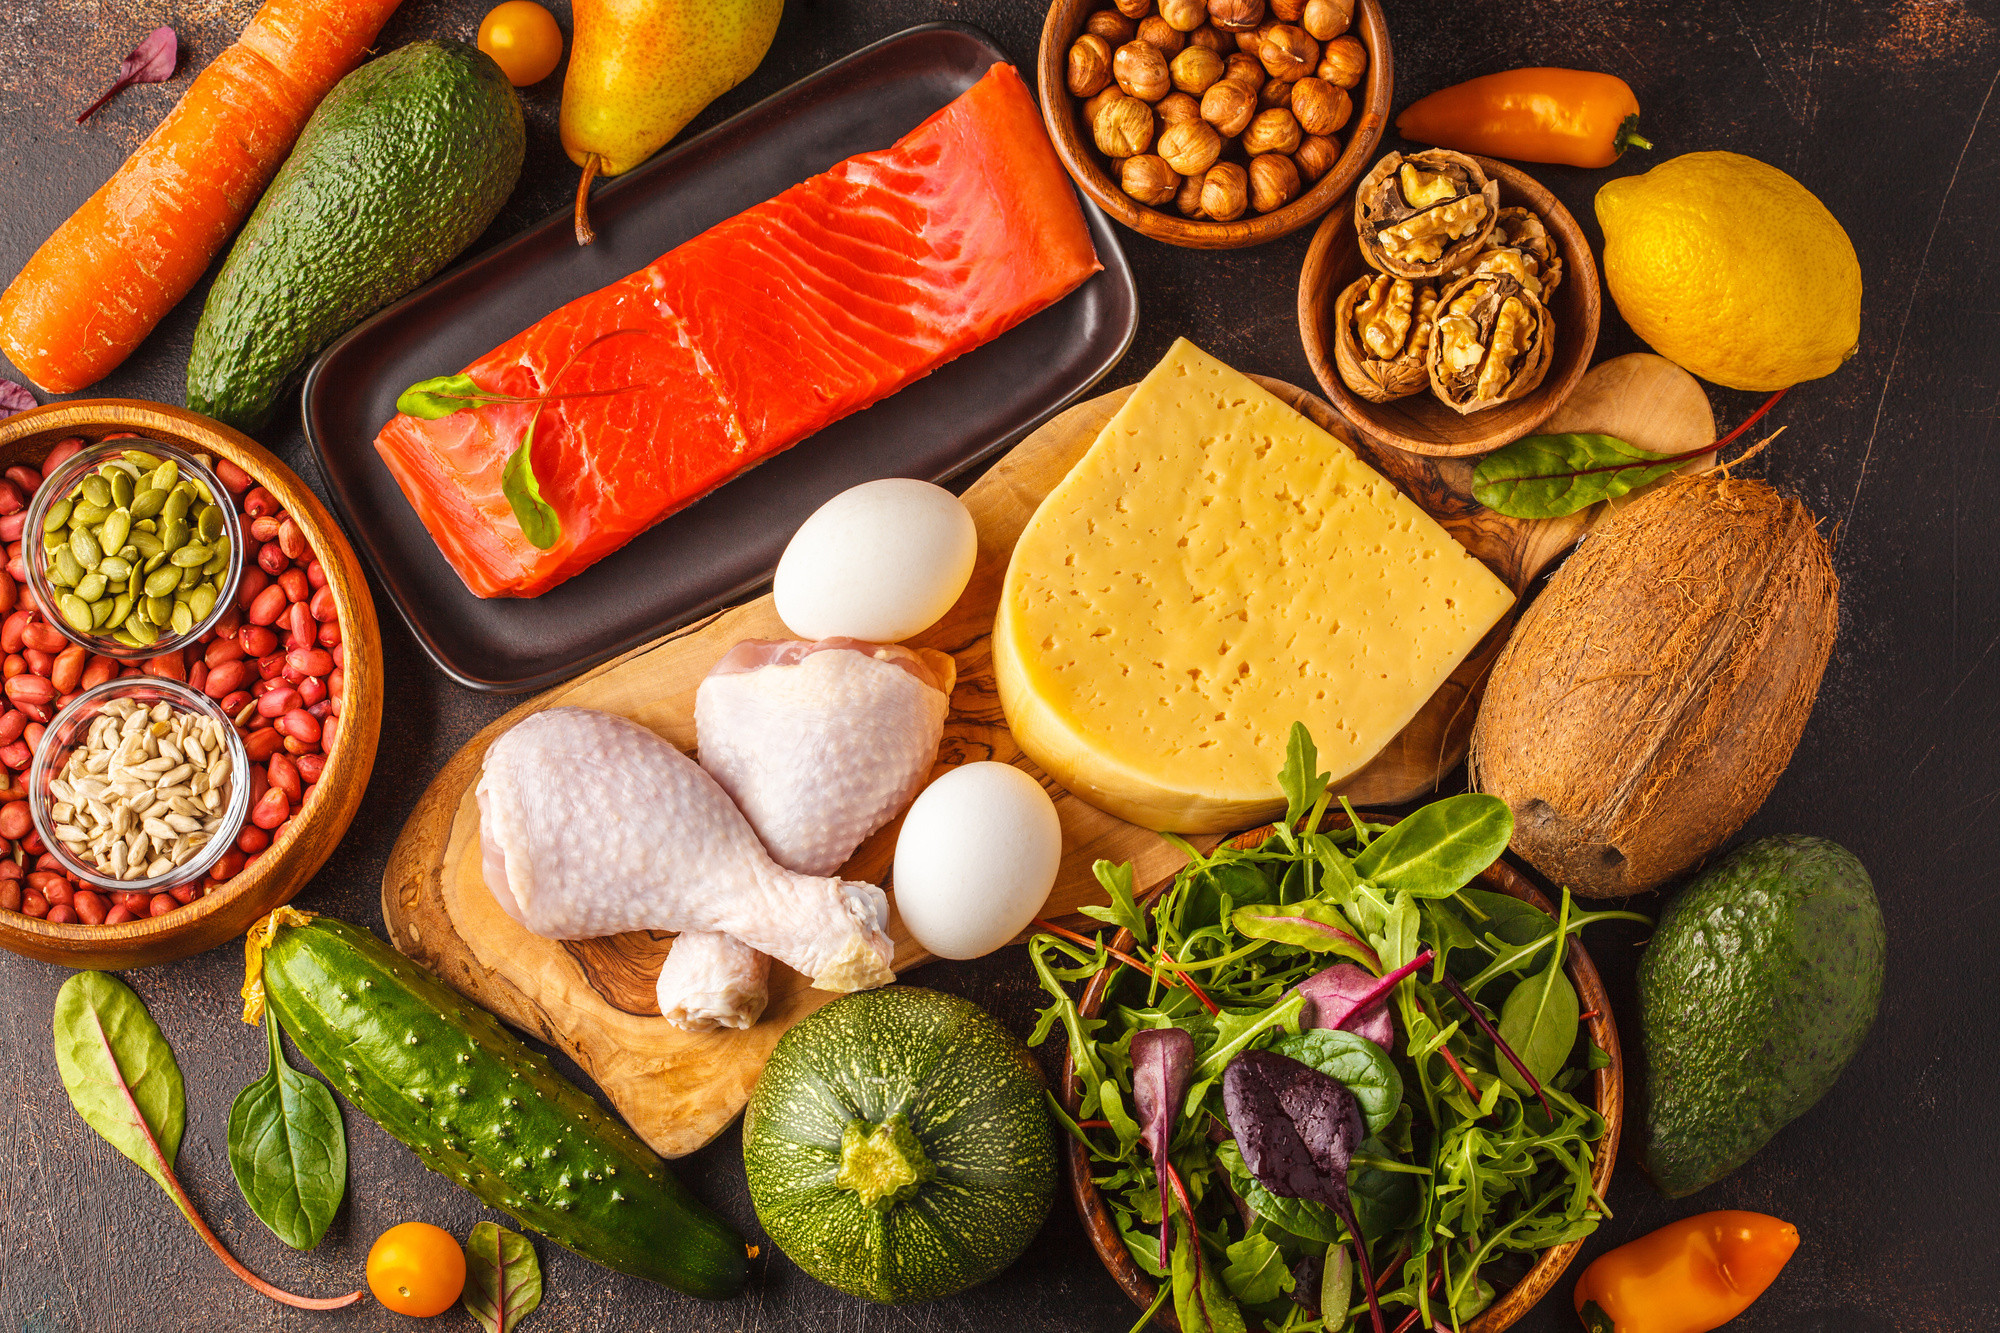 Ketosis Diet Foods  The 10 Best Keto Diet Foods For Your Meal Plan